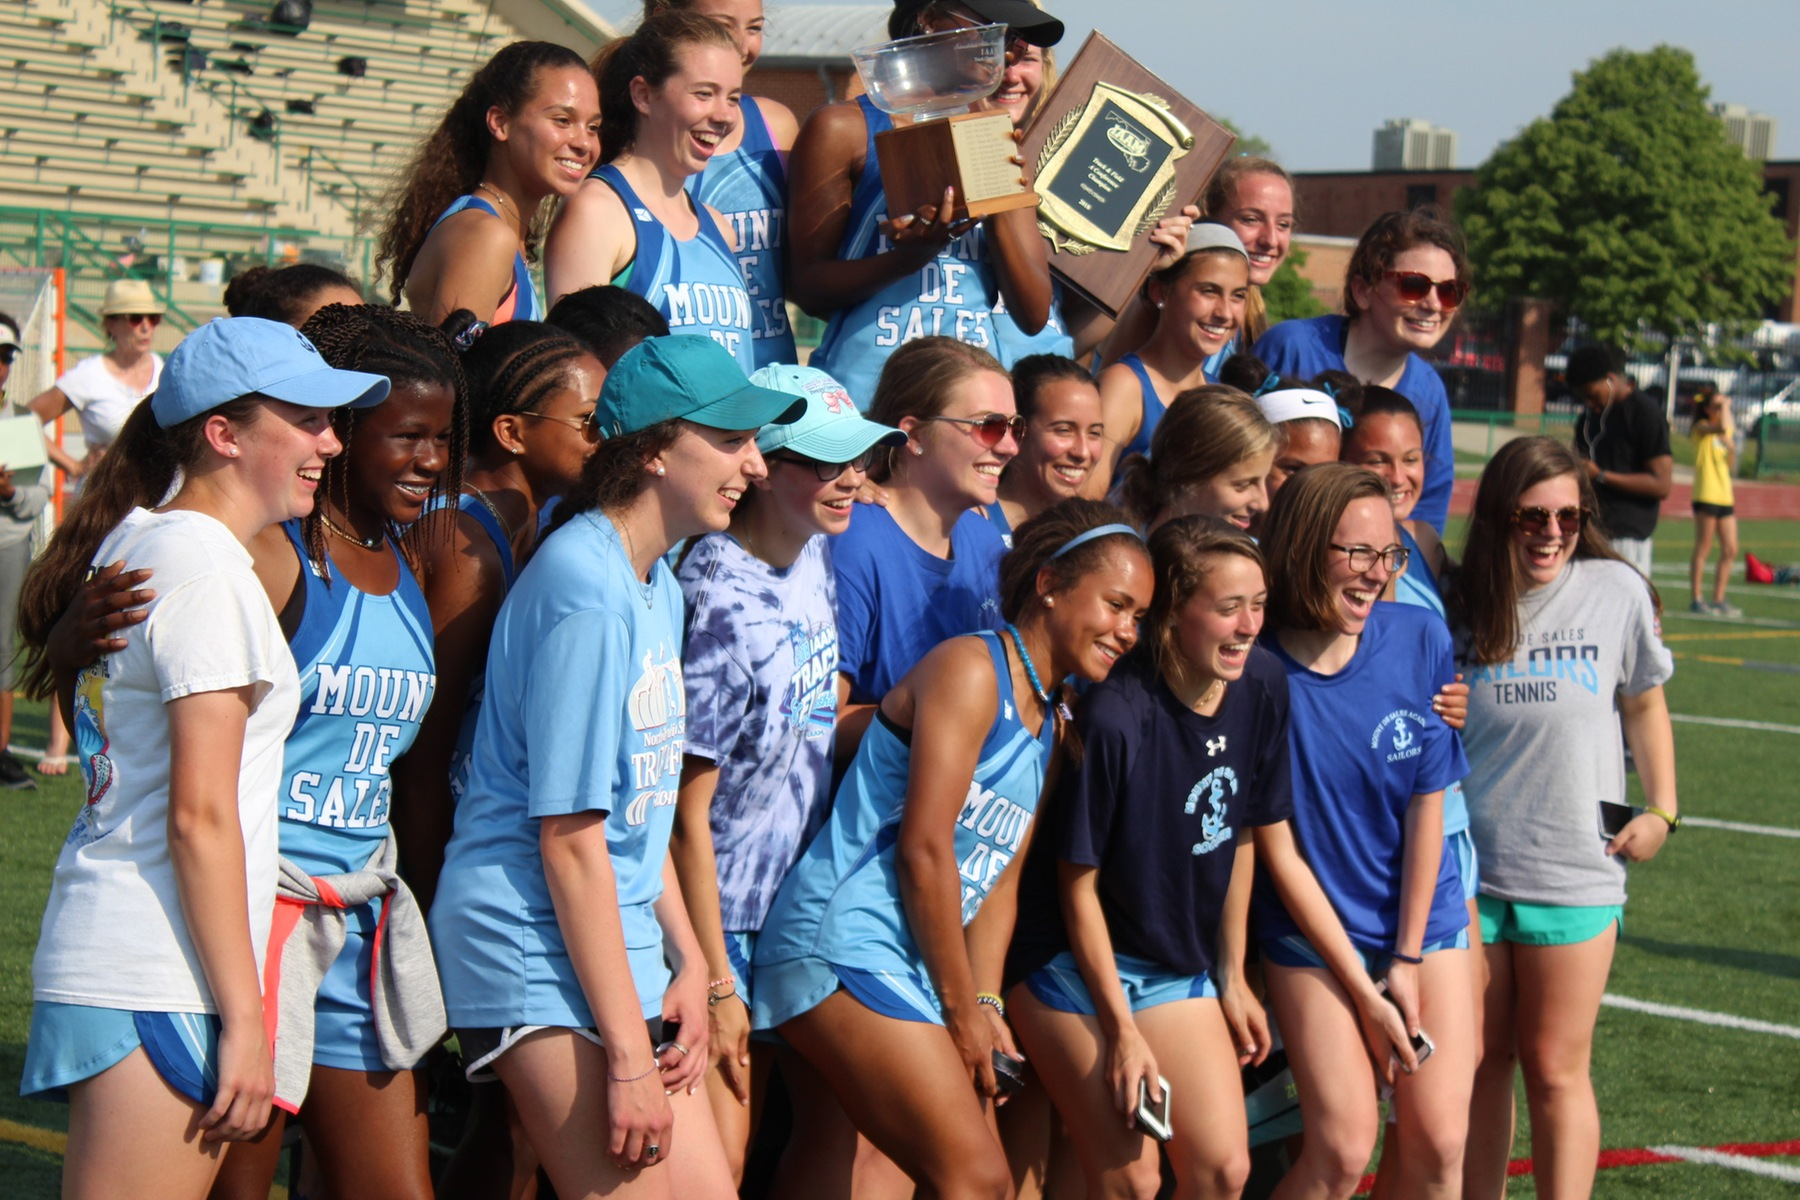 A Conference track and field title goes to Mount de Sales